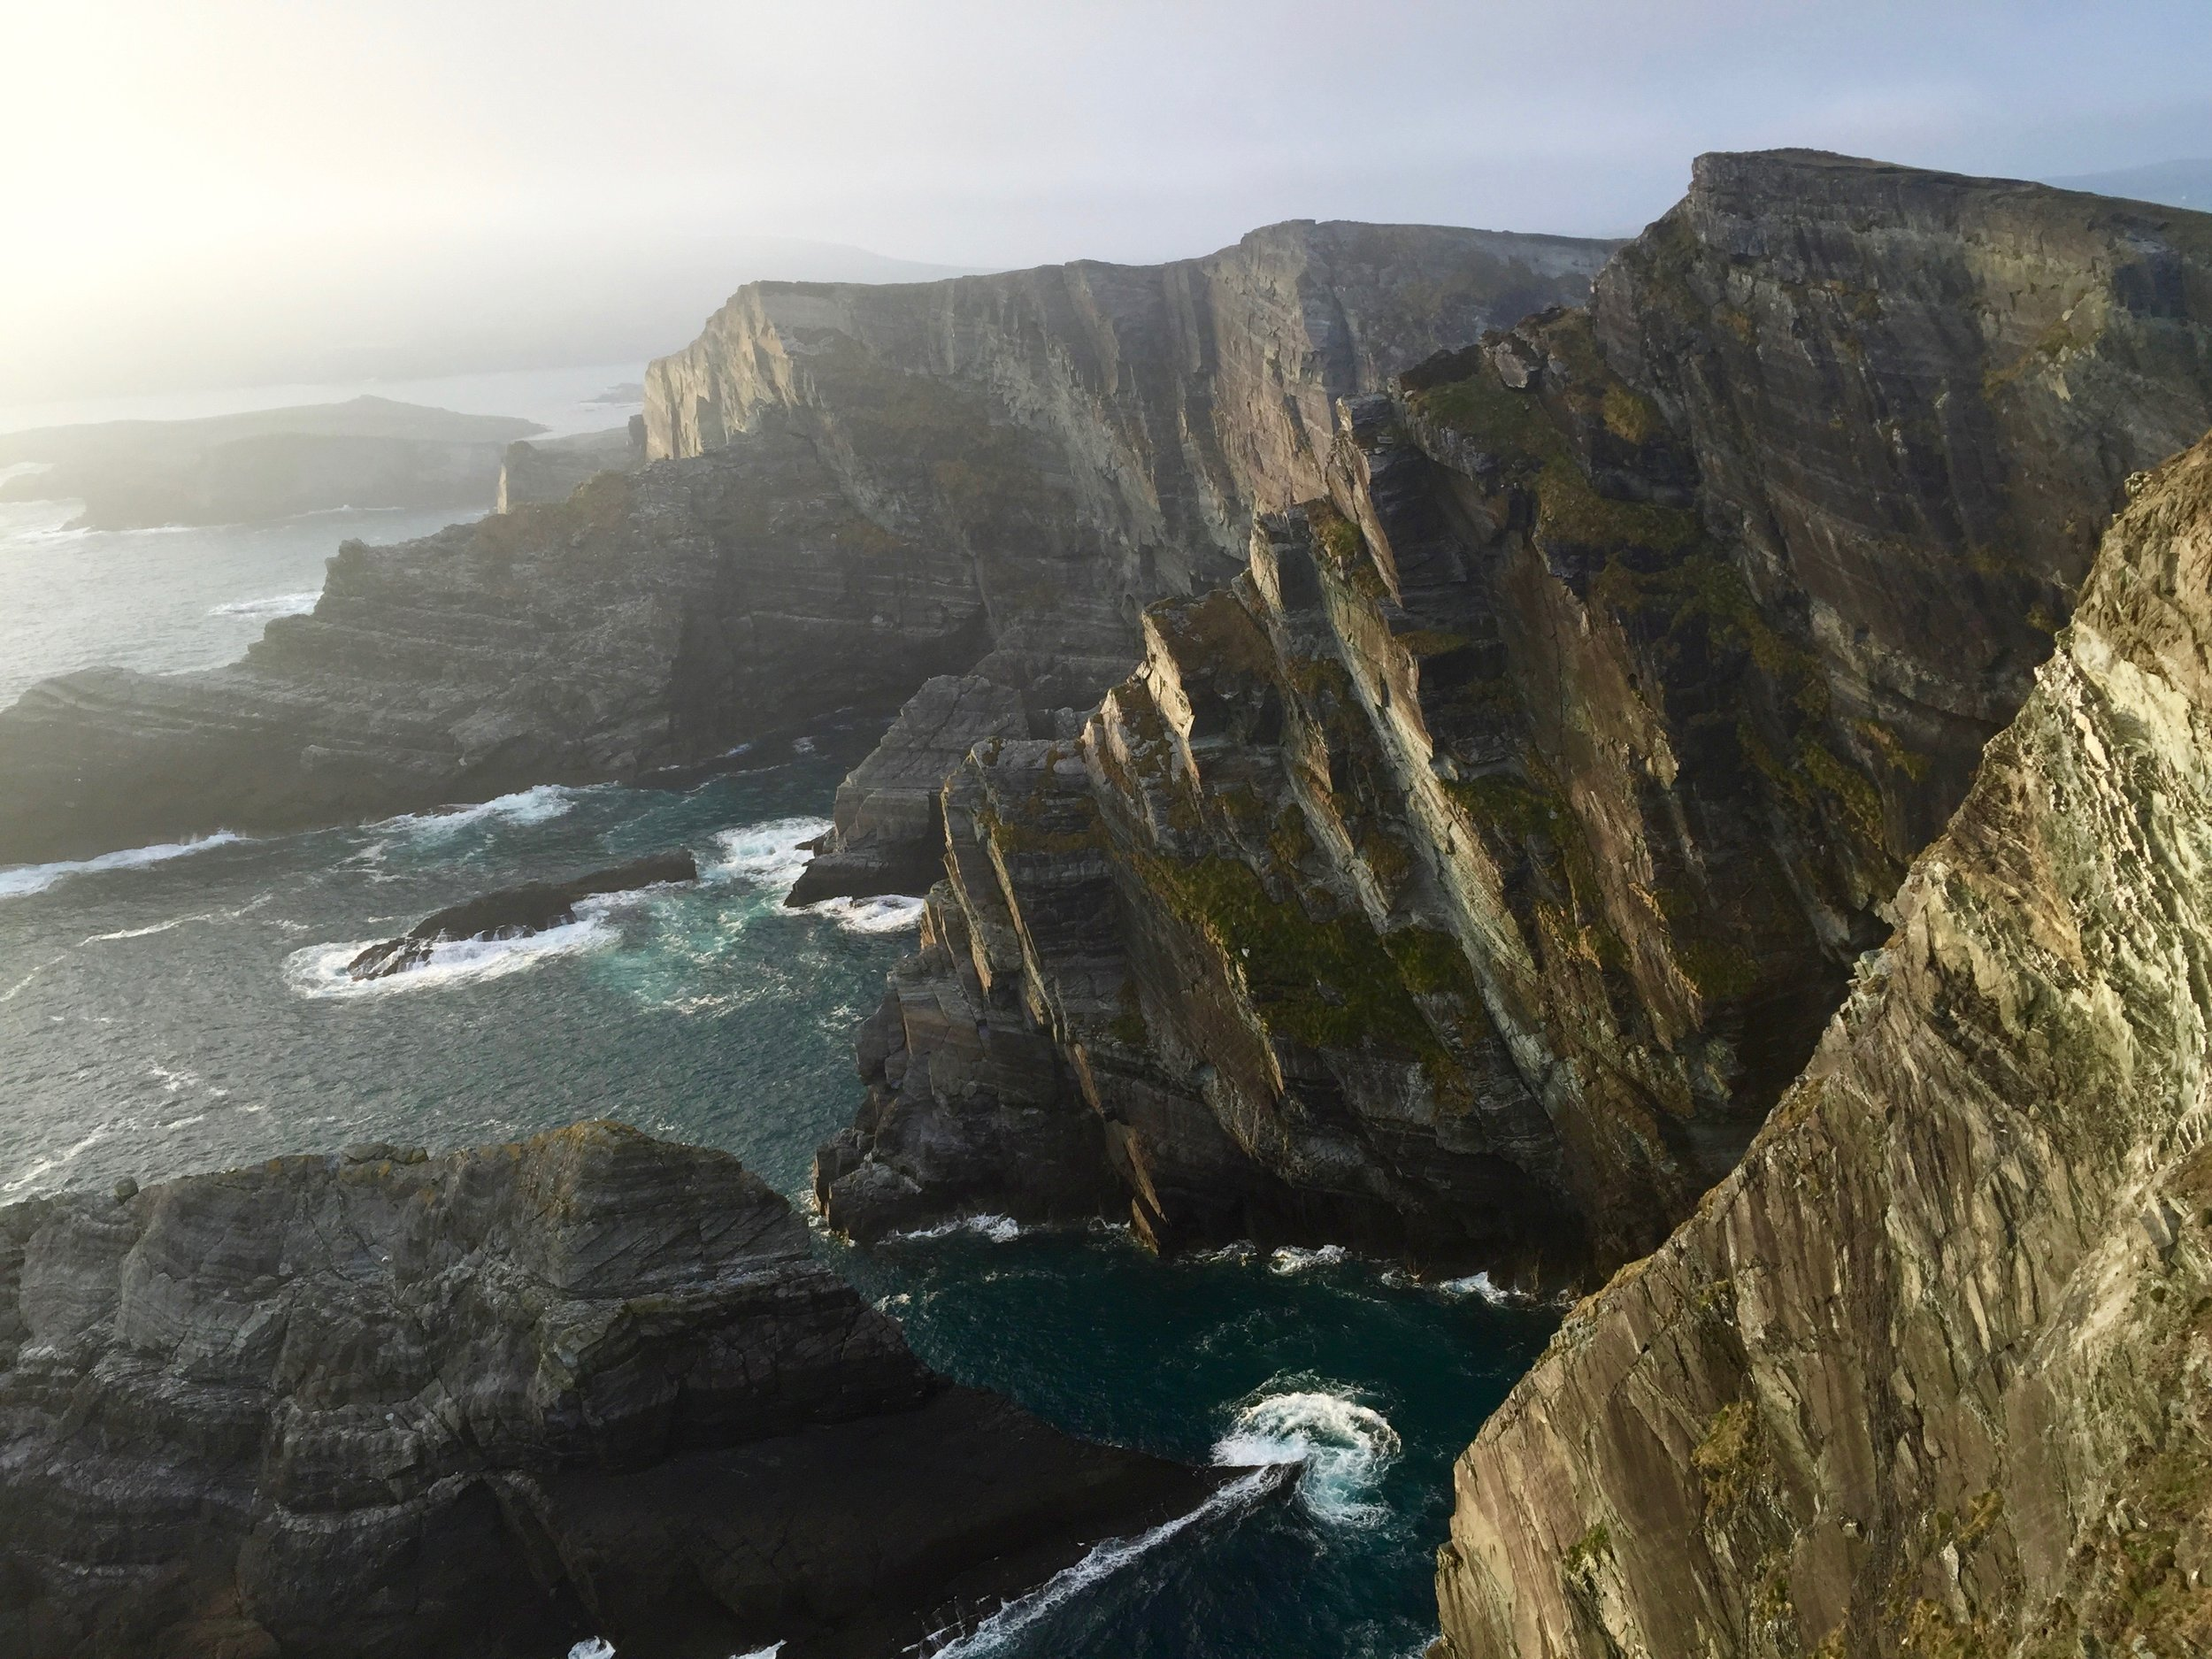 The Cliffs of Kerry